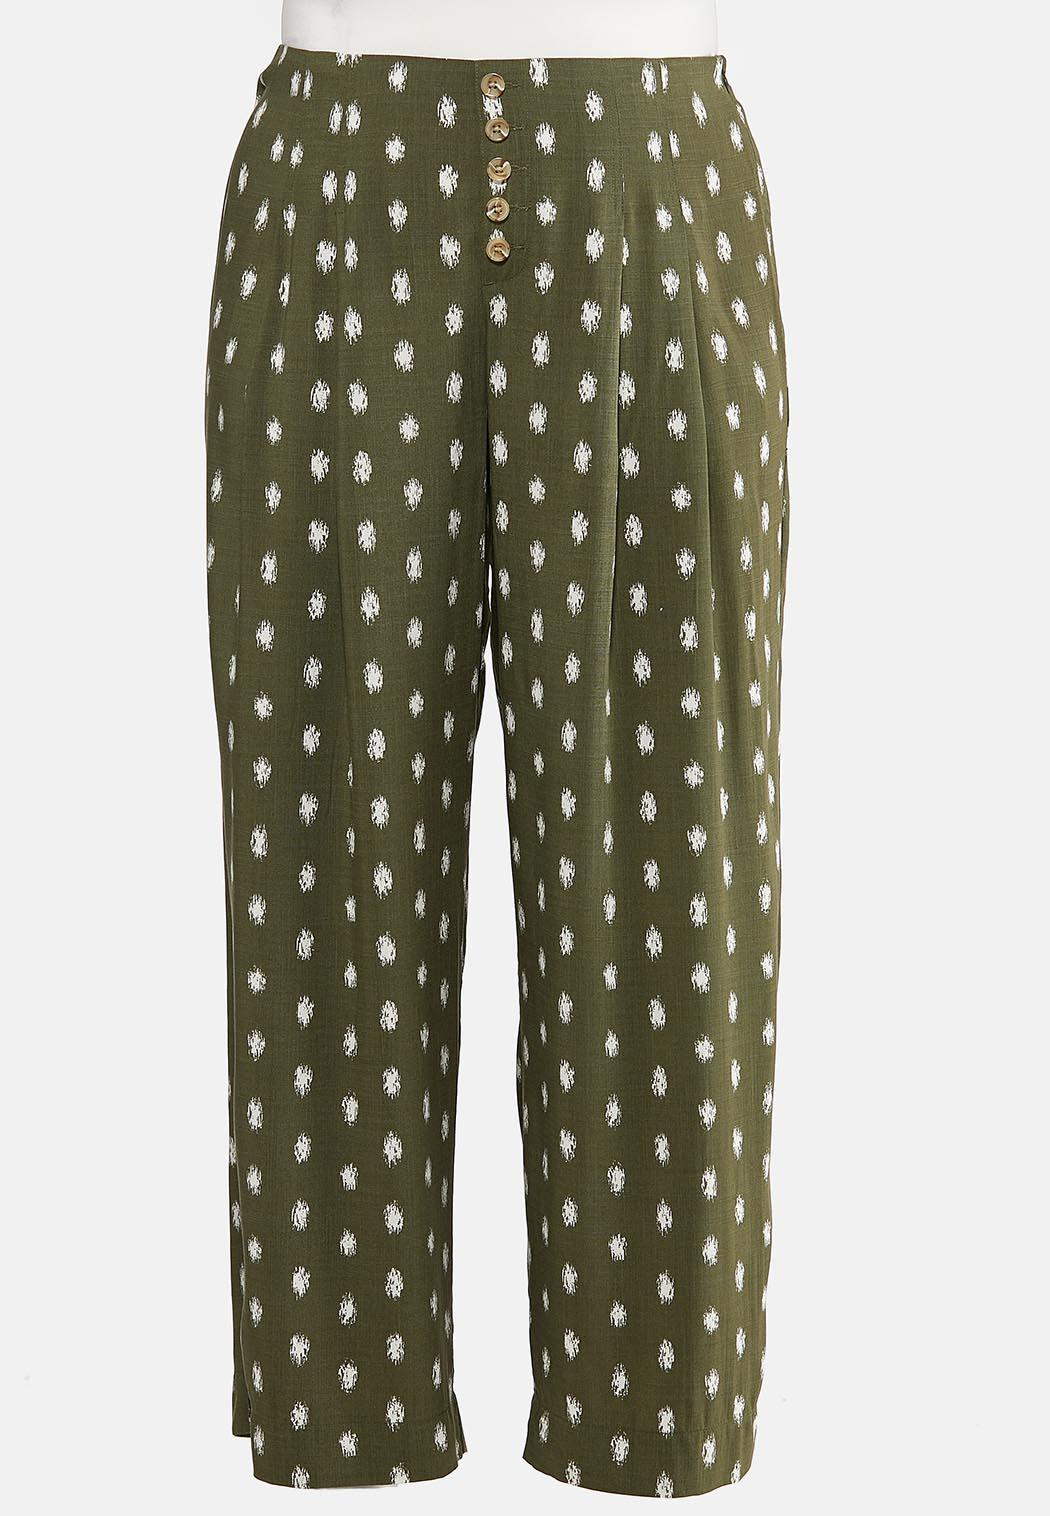 Plus Size Dotted Olive Pants